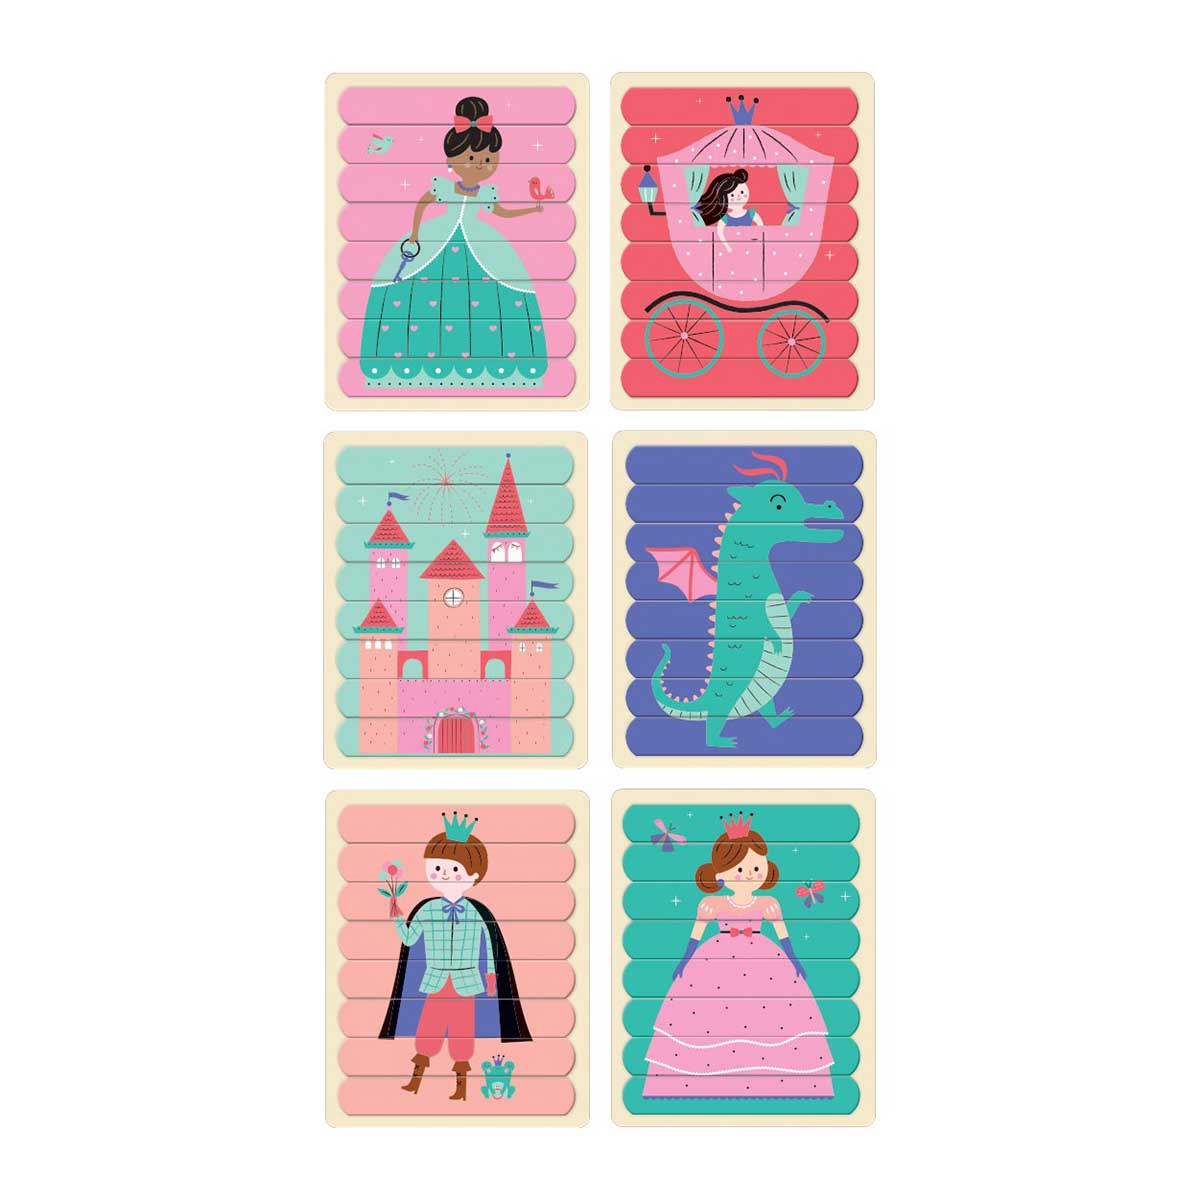 Enchanting Princess Puzzle Sticks Princess Jigsaw Puzzle